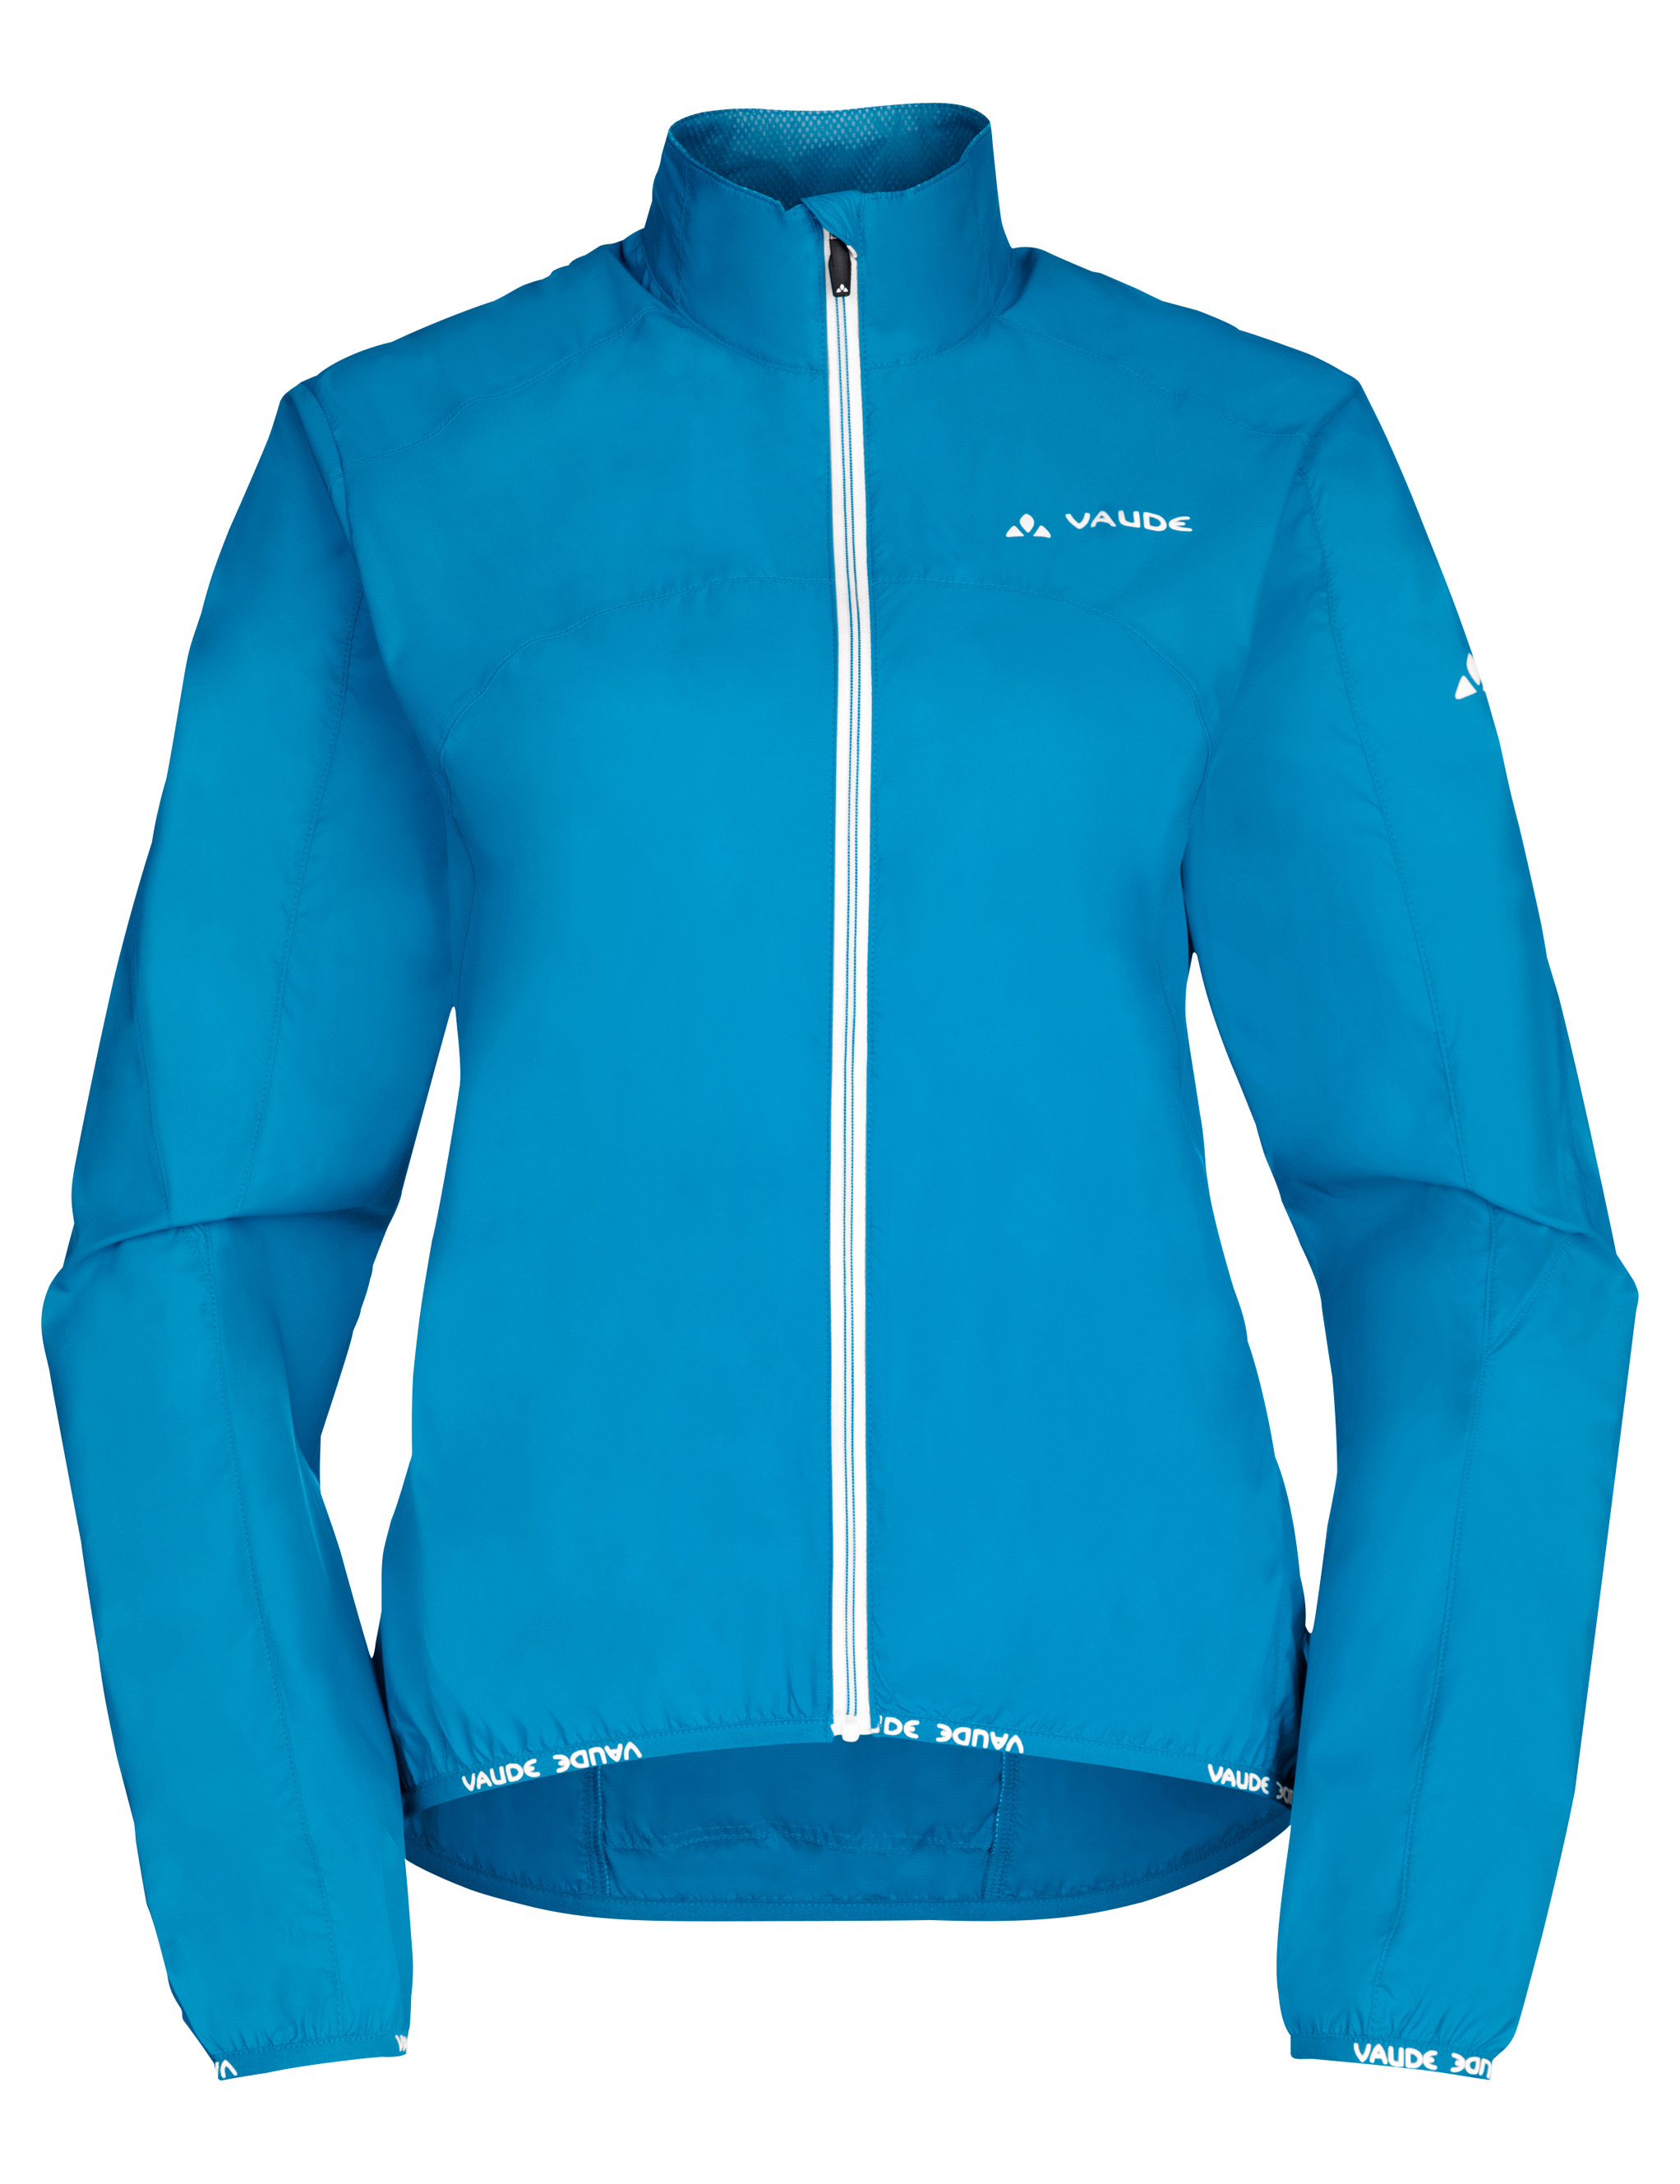 VAUDE Women´s Air Jacket II spring blue Größe 36 - schneider-sports